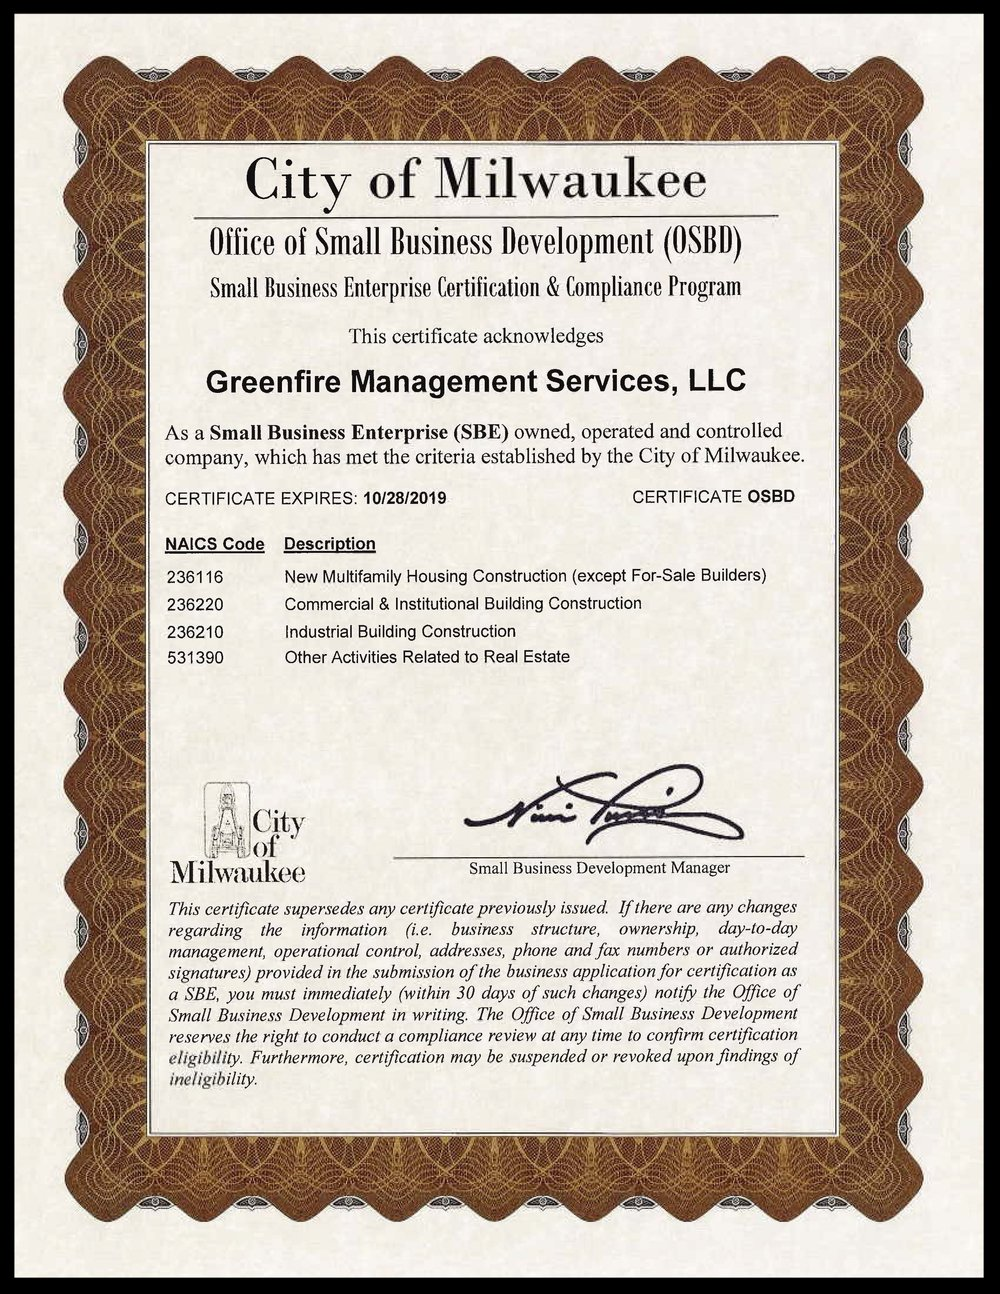 City of Milwaukee SBE Exp. 3.28.17 - Certificate.jpg